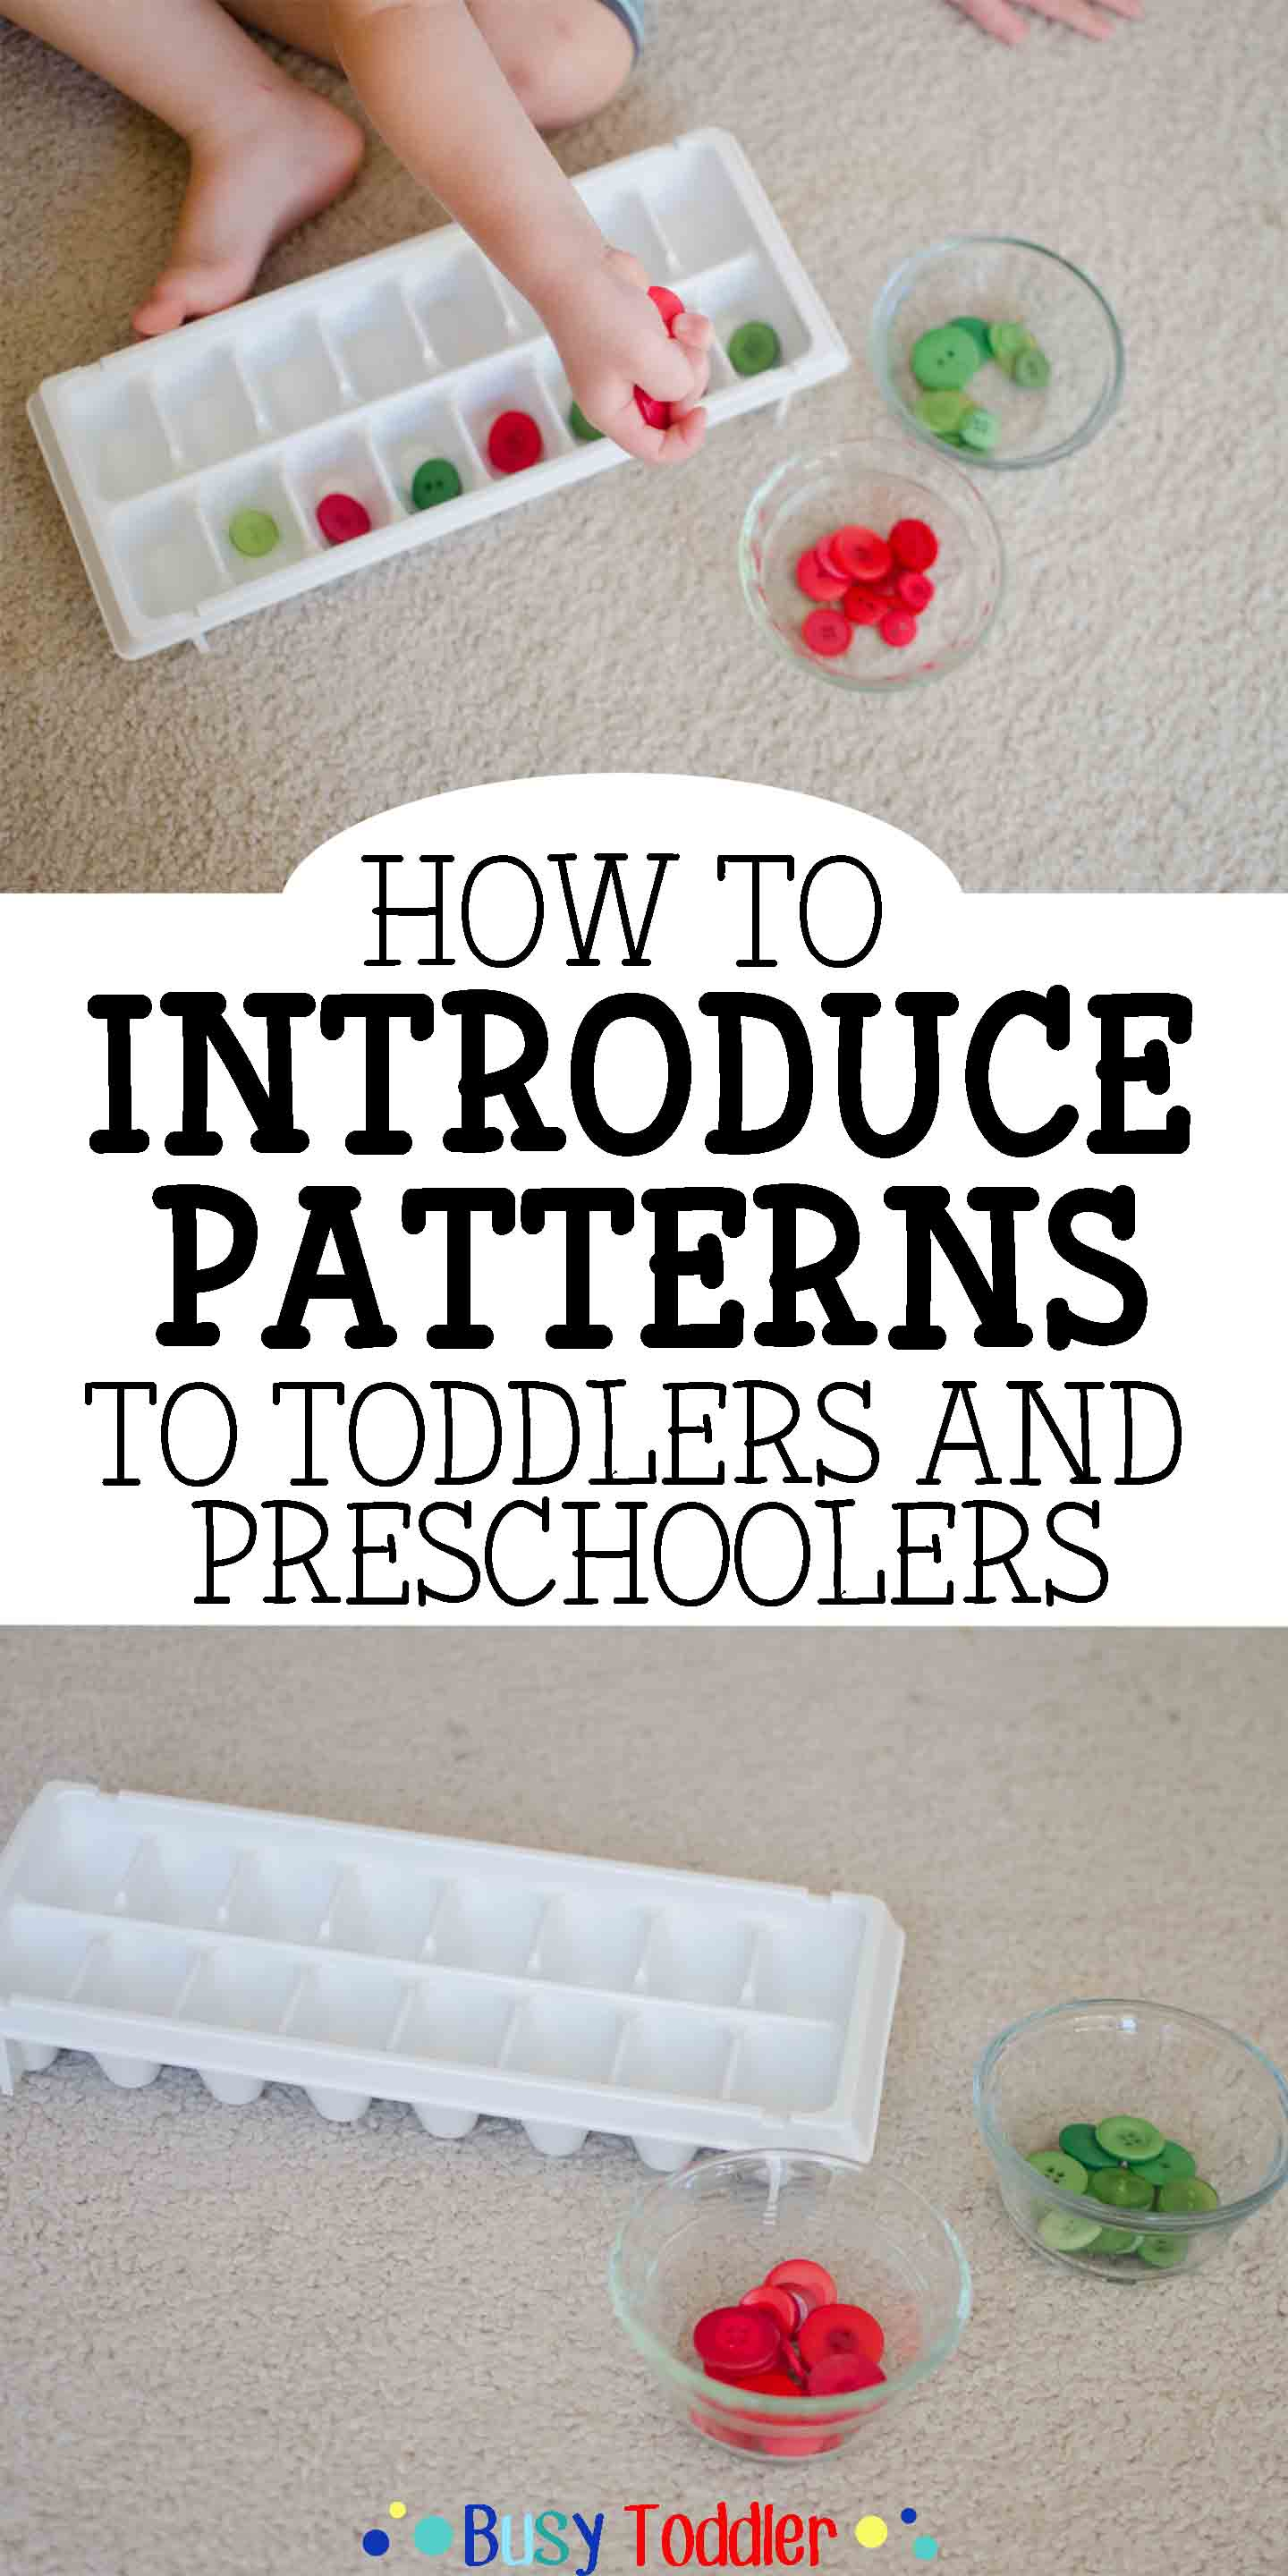 INTRODUCING PATTERNS: Exposing toddlers and preschoolers to patterning in this simple indoor activity using buttons.